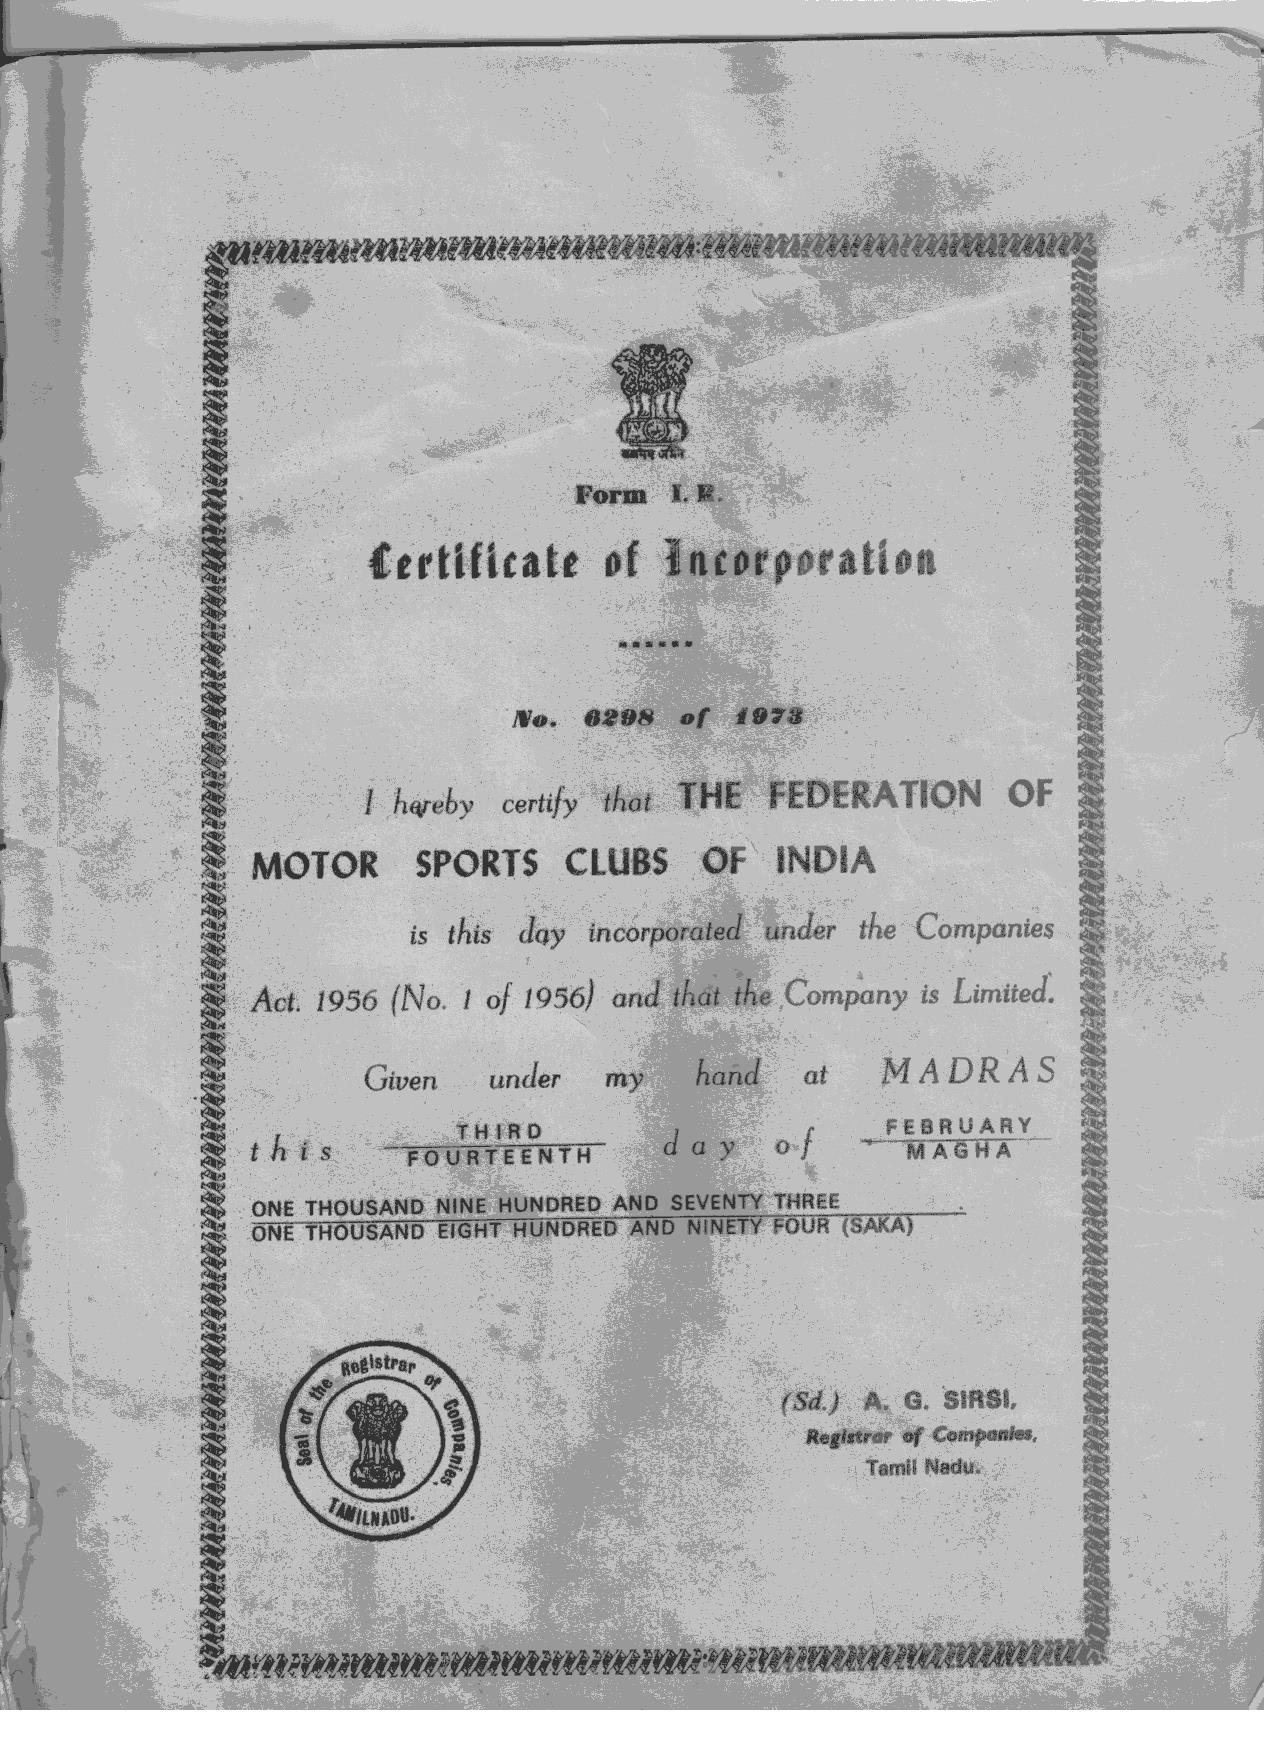 FMSCI.Certificate.of.Incorporation 001